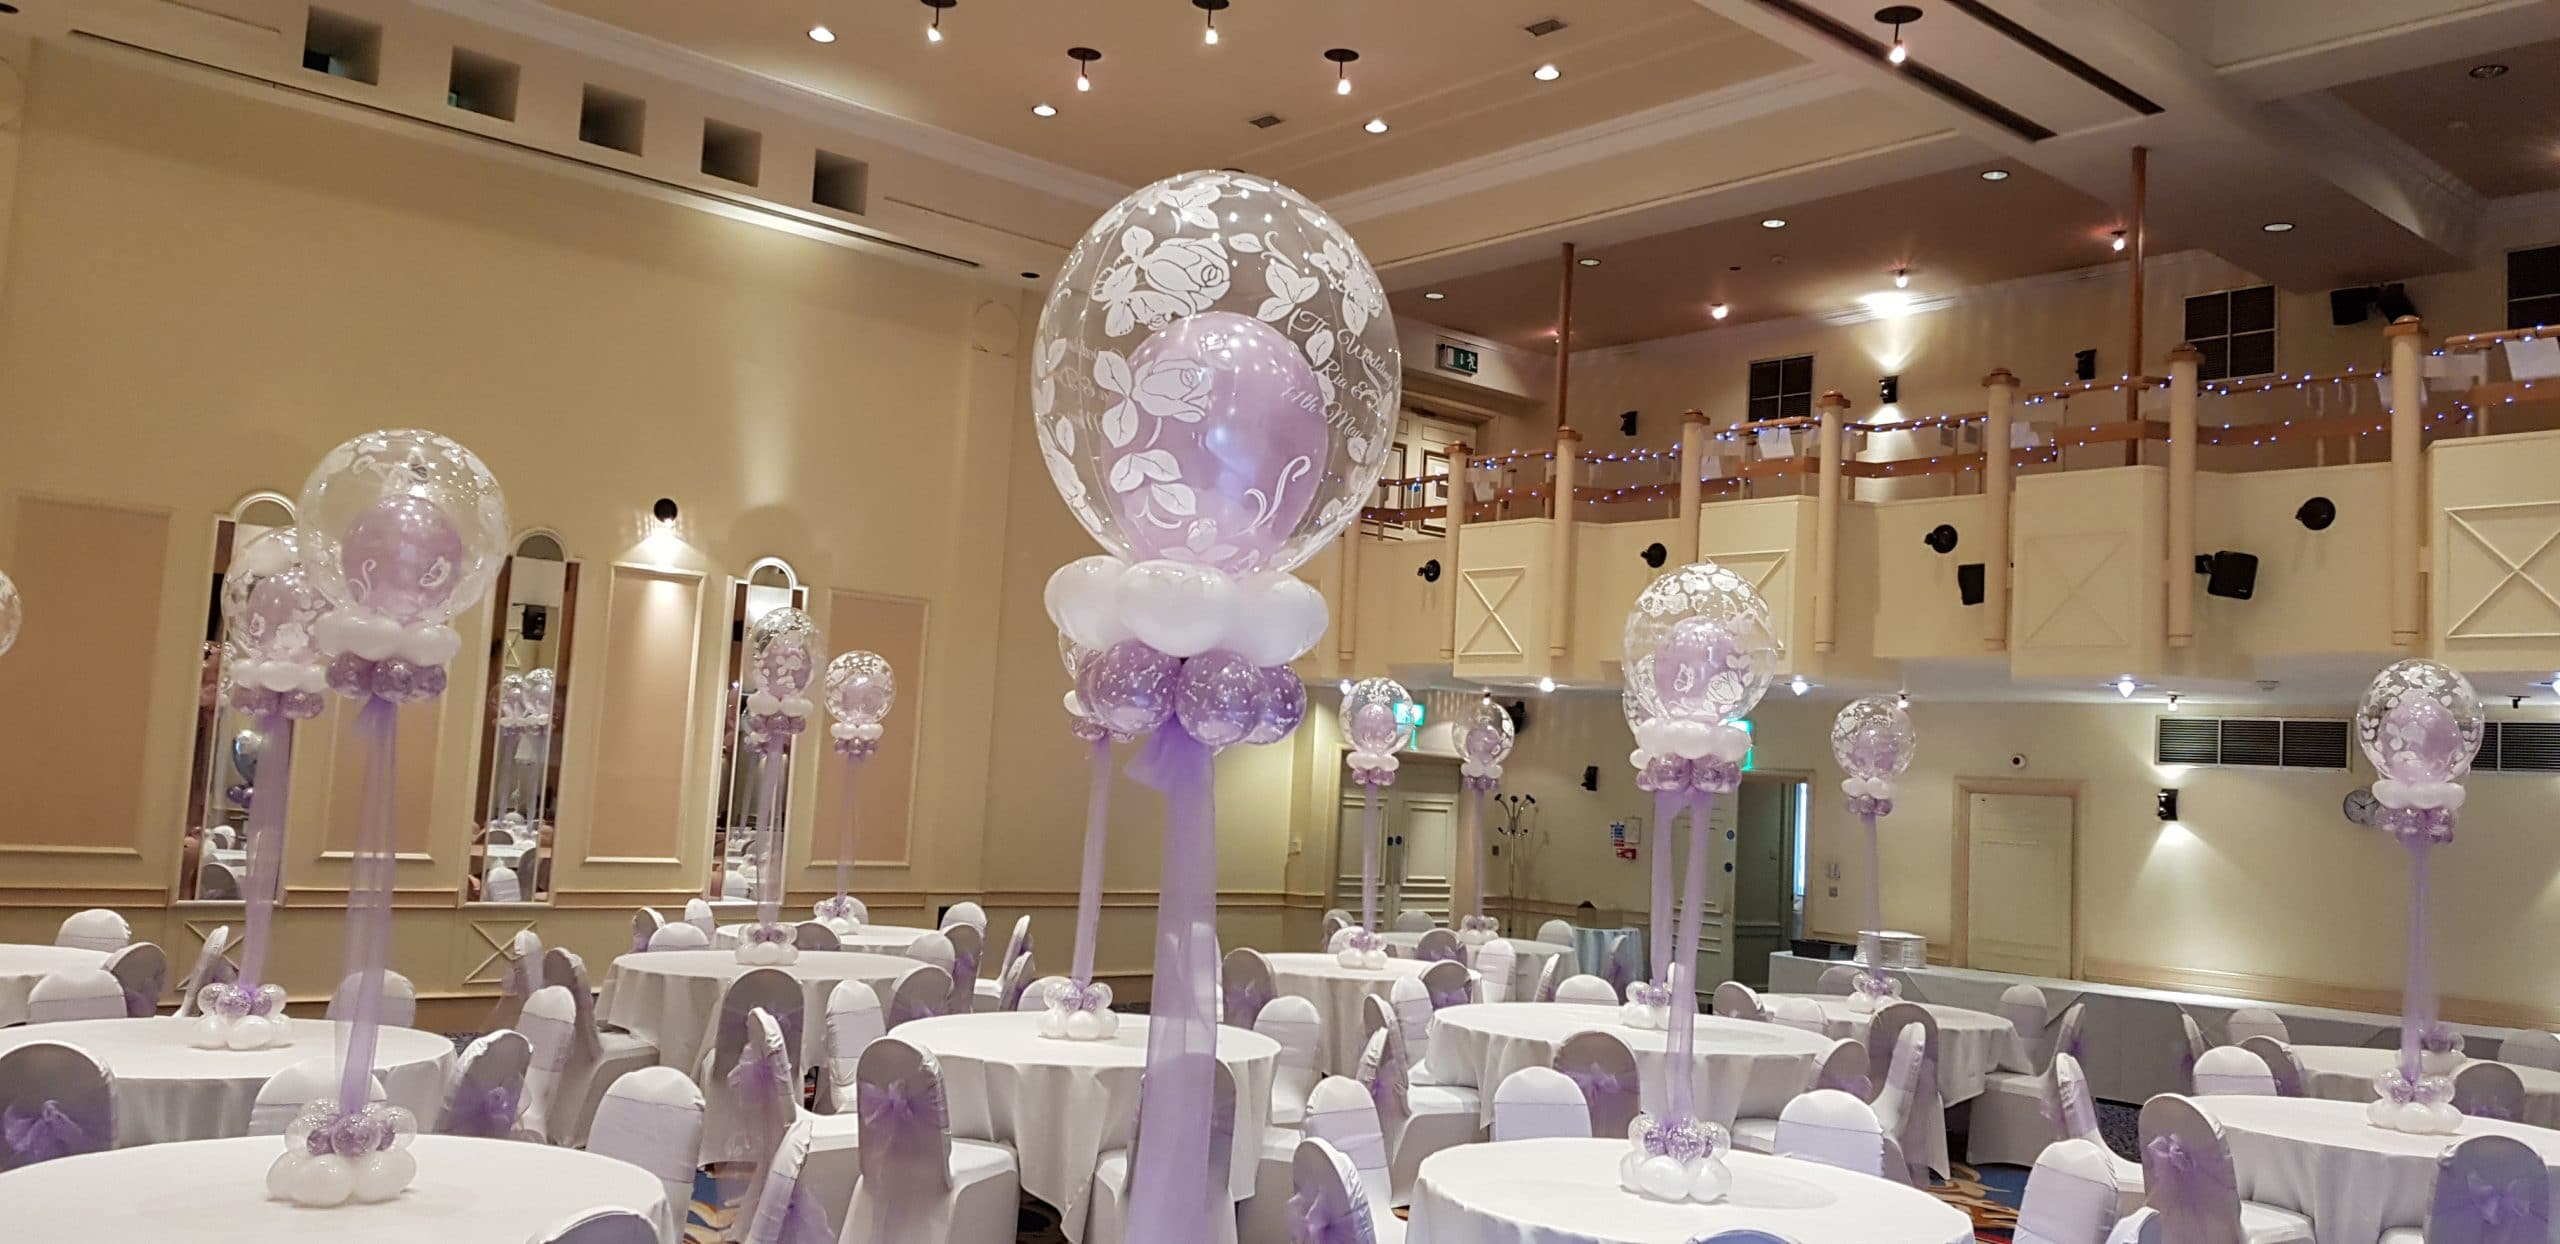 Wedding table decorations available from Cardiff Balloons